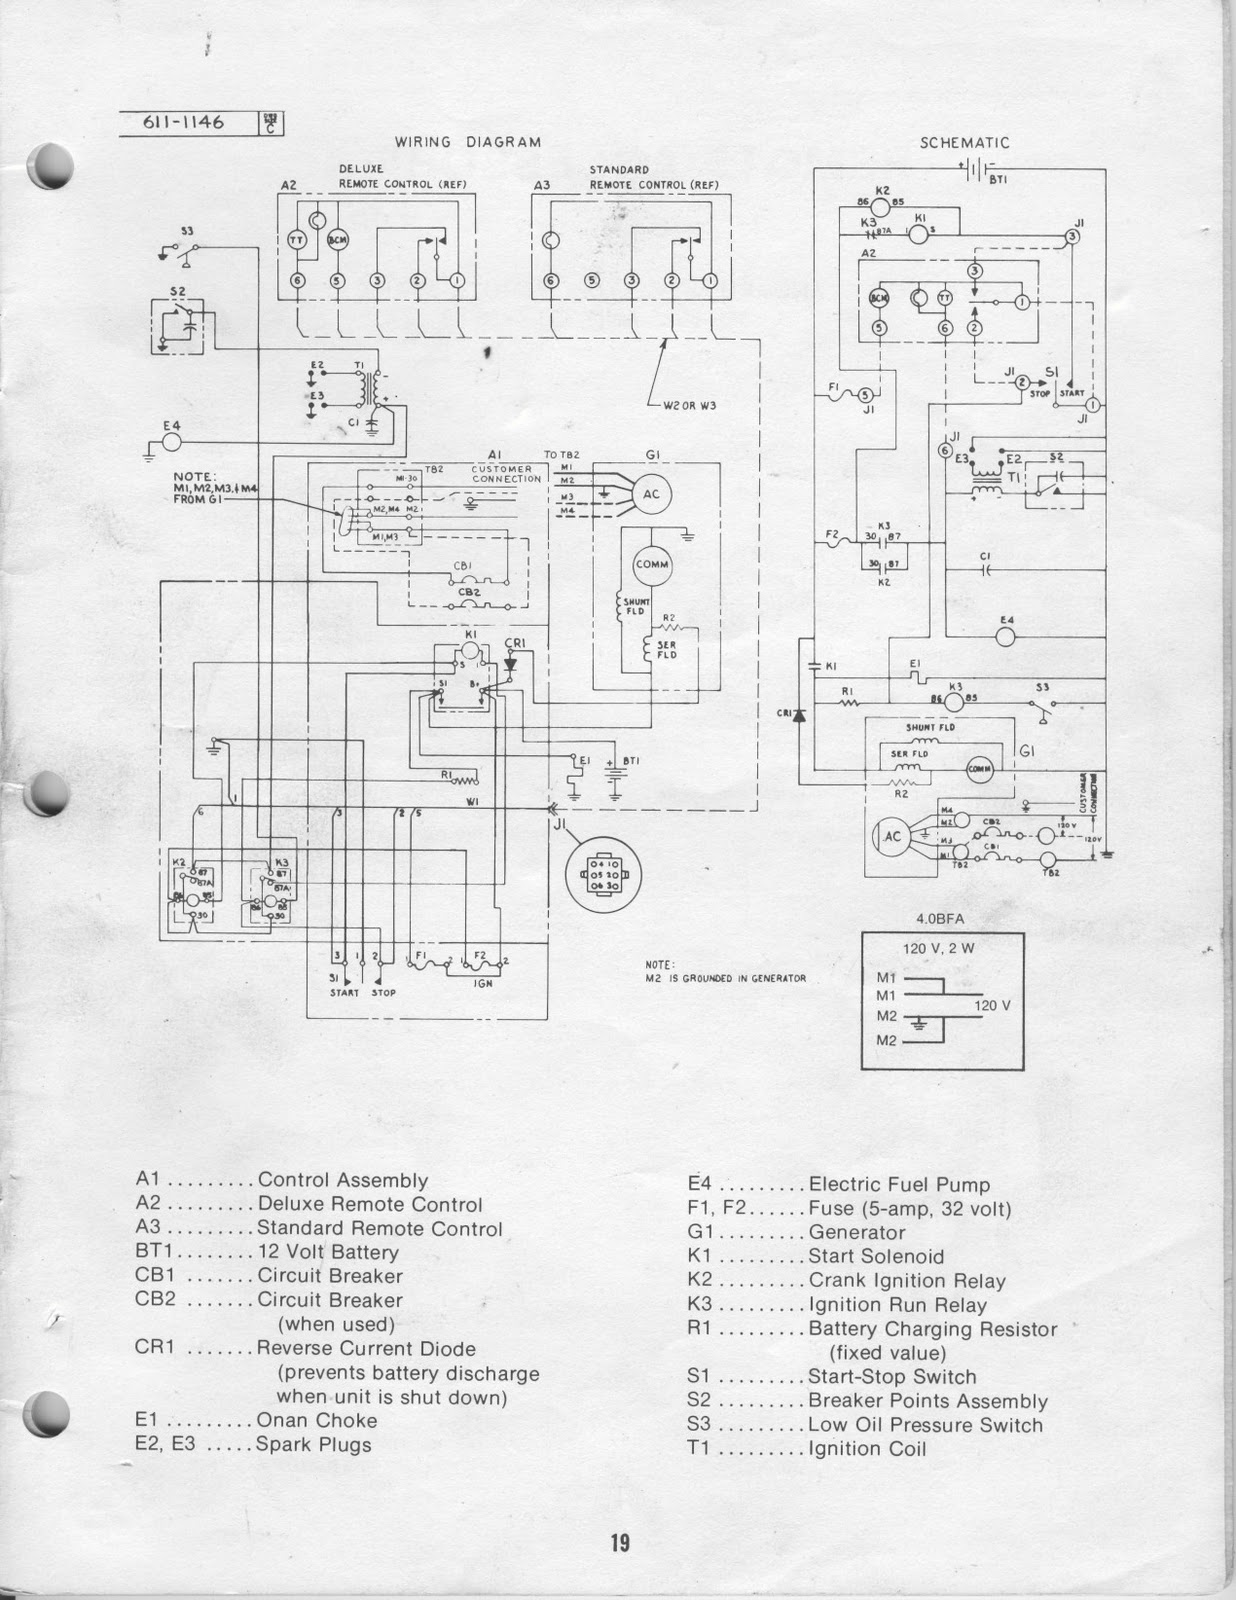 onan+4kw+bfa+owners+manual0001 021 1983 fleetwood pace arrow owners manuals onan 4 0 kw bfa genset kwikee electric step wiring diagram at cos-gaming.co